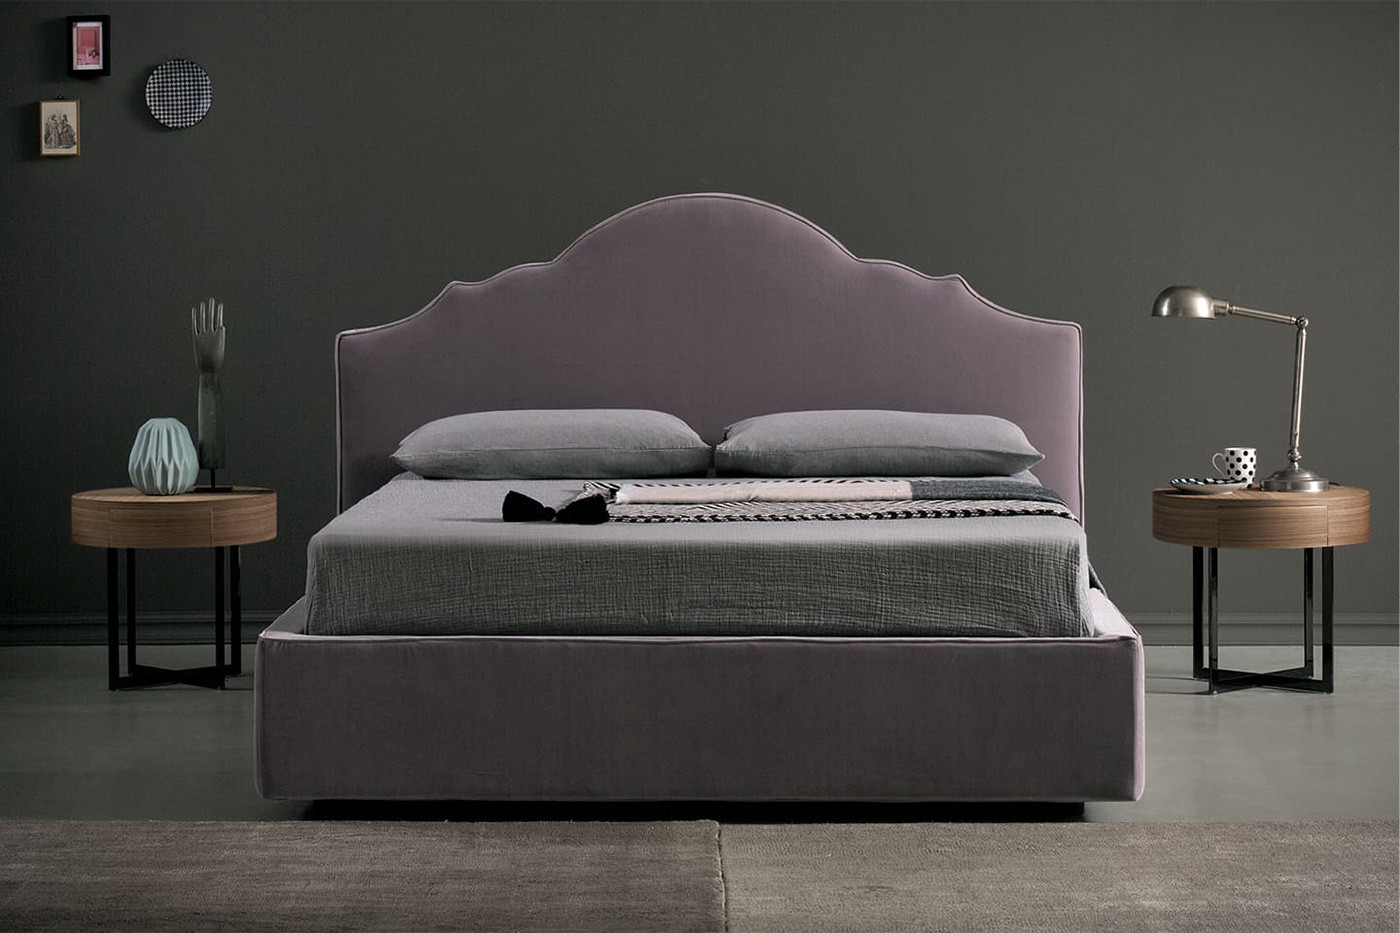 Upholstered scalloped headboard bed, available as a king size and super king size